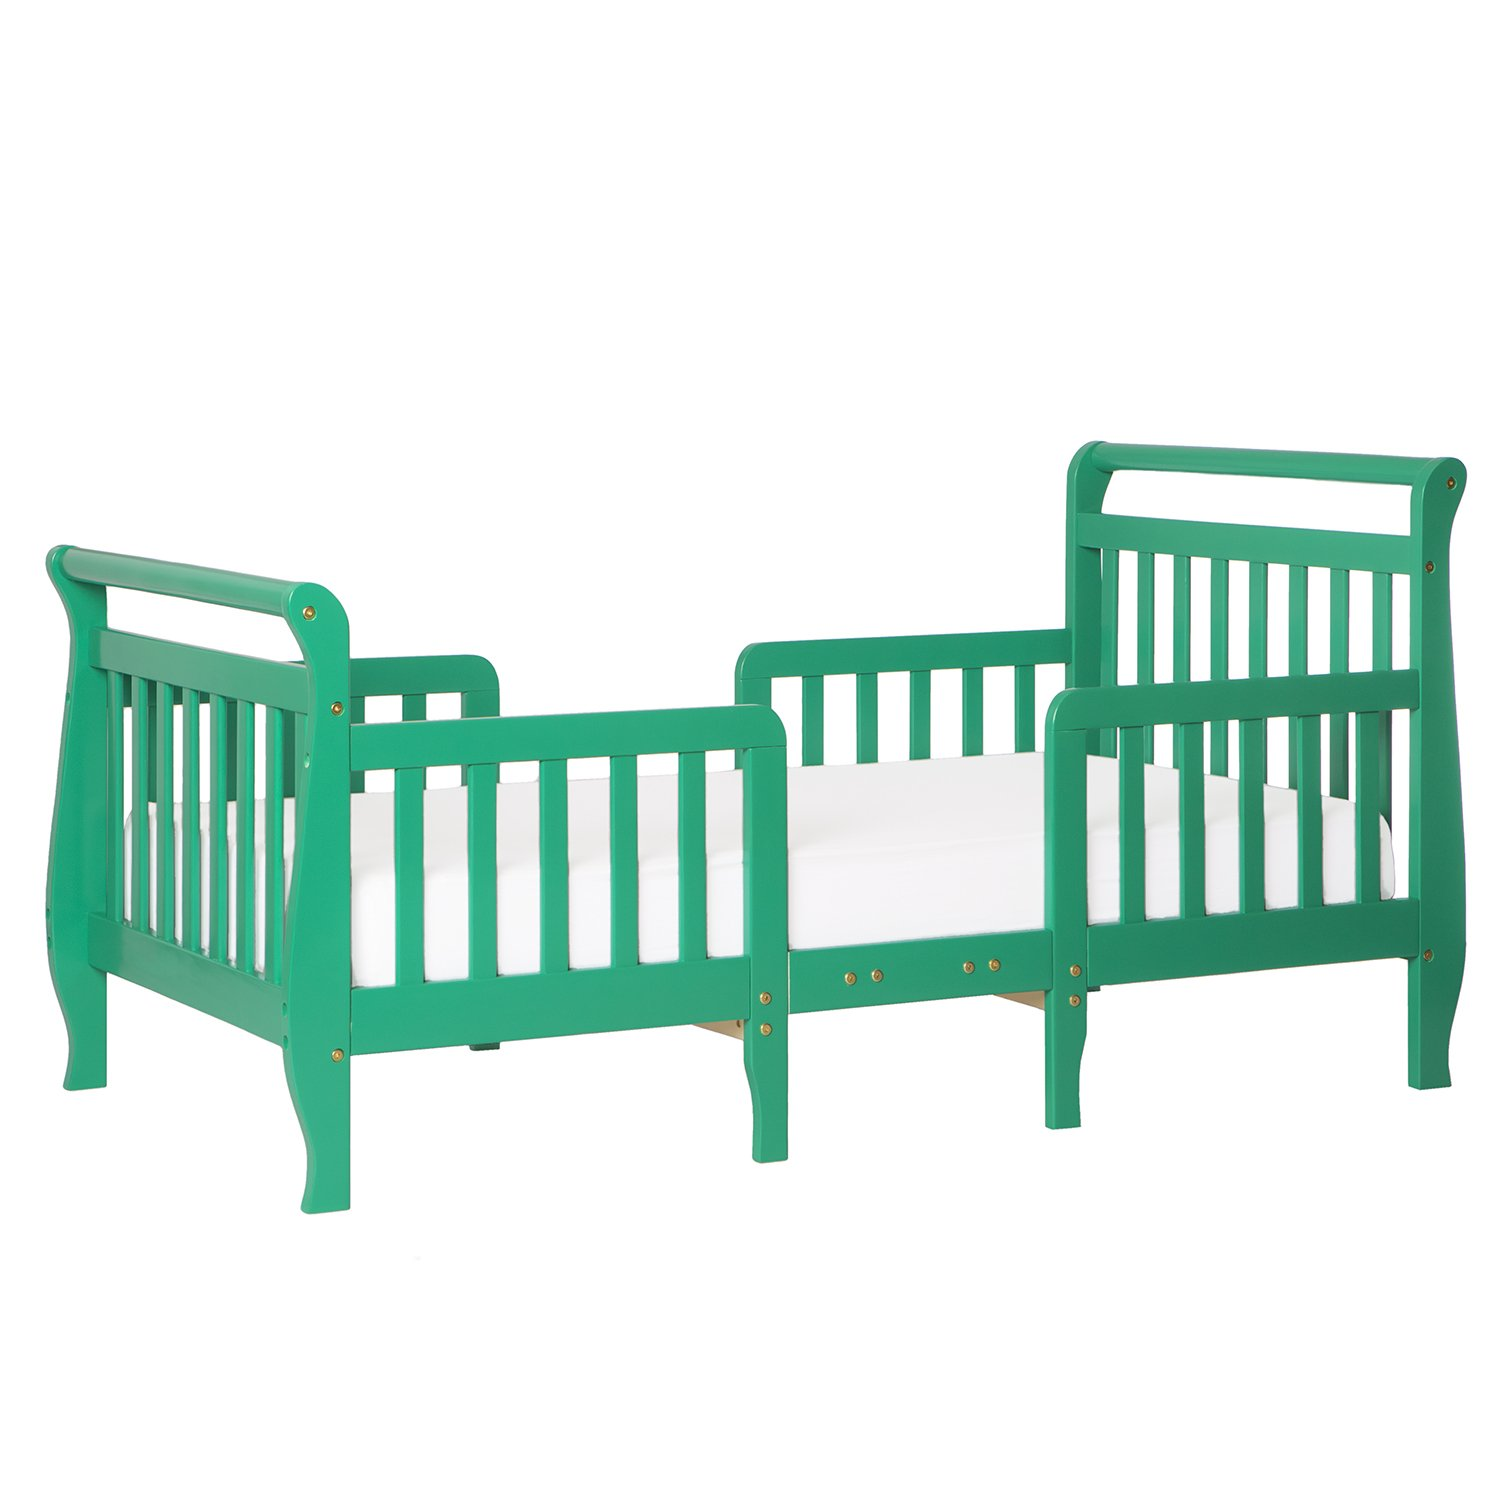 Emerald Dream On Me Emma 3 in 1 Congreenible Toddler Bed, Royal bluee